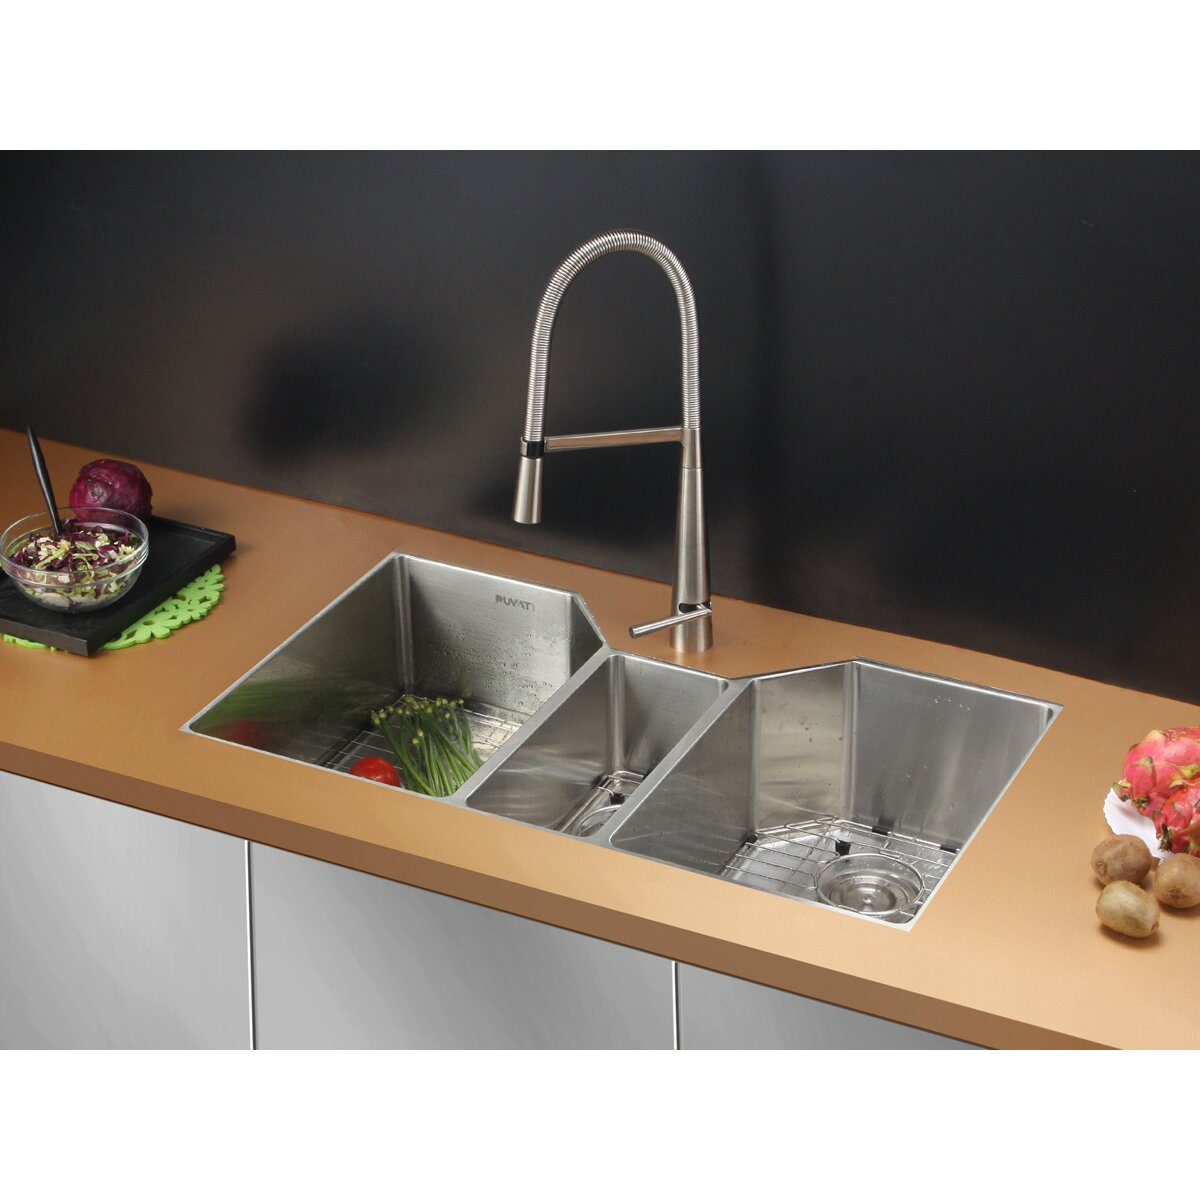 3 bowl kitchen sinks ruvati gravena 35 quot x 19 5 quot undermount bowl kitchen 3853